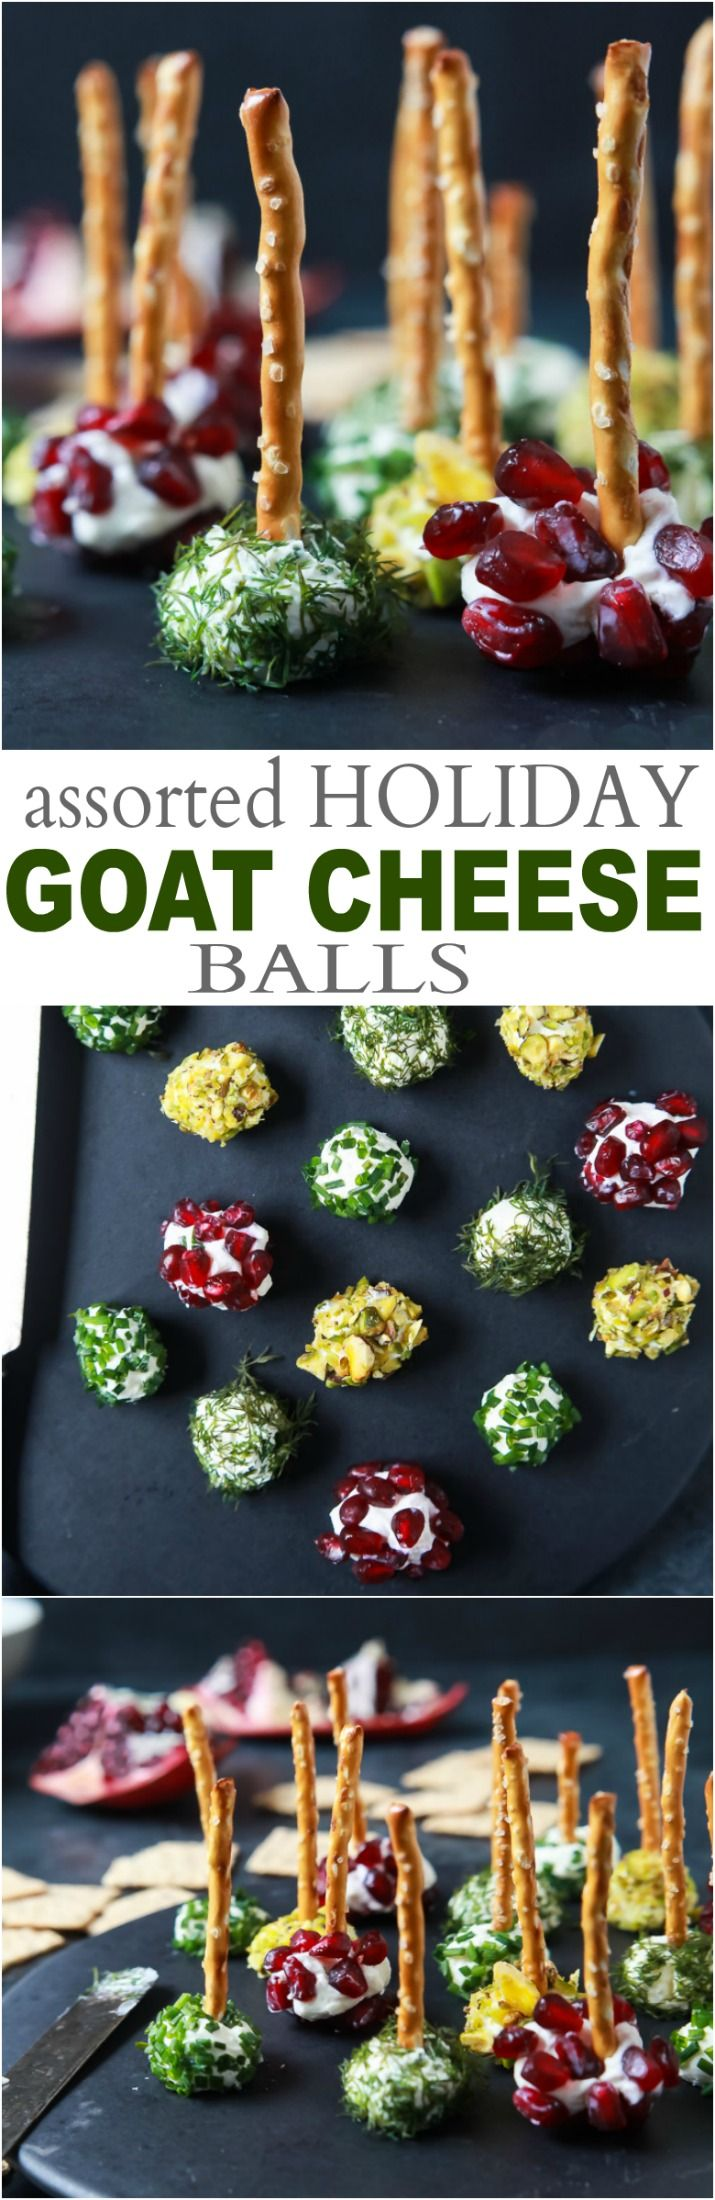 Assorted Holiday Goat Cheese Balls   joyfulhealthyeats.com   #appetizer #ad #holiday #christmas #newyearseve #cheese #starters #glutenfree #healthy #light #easy